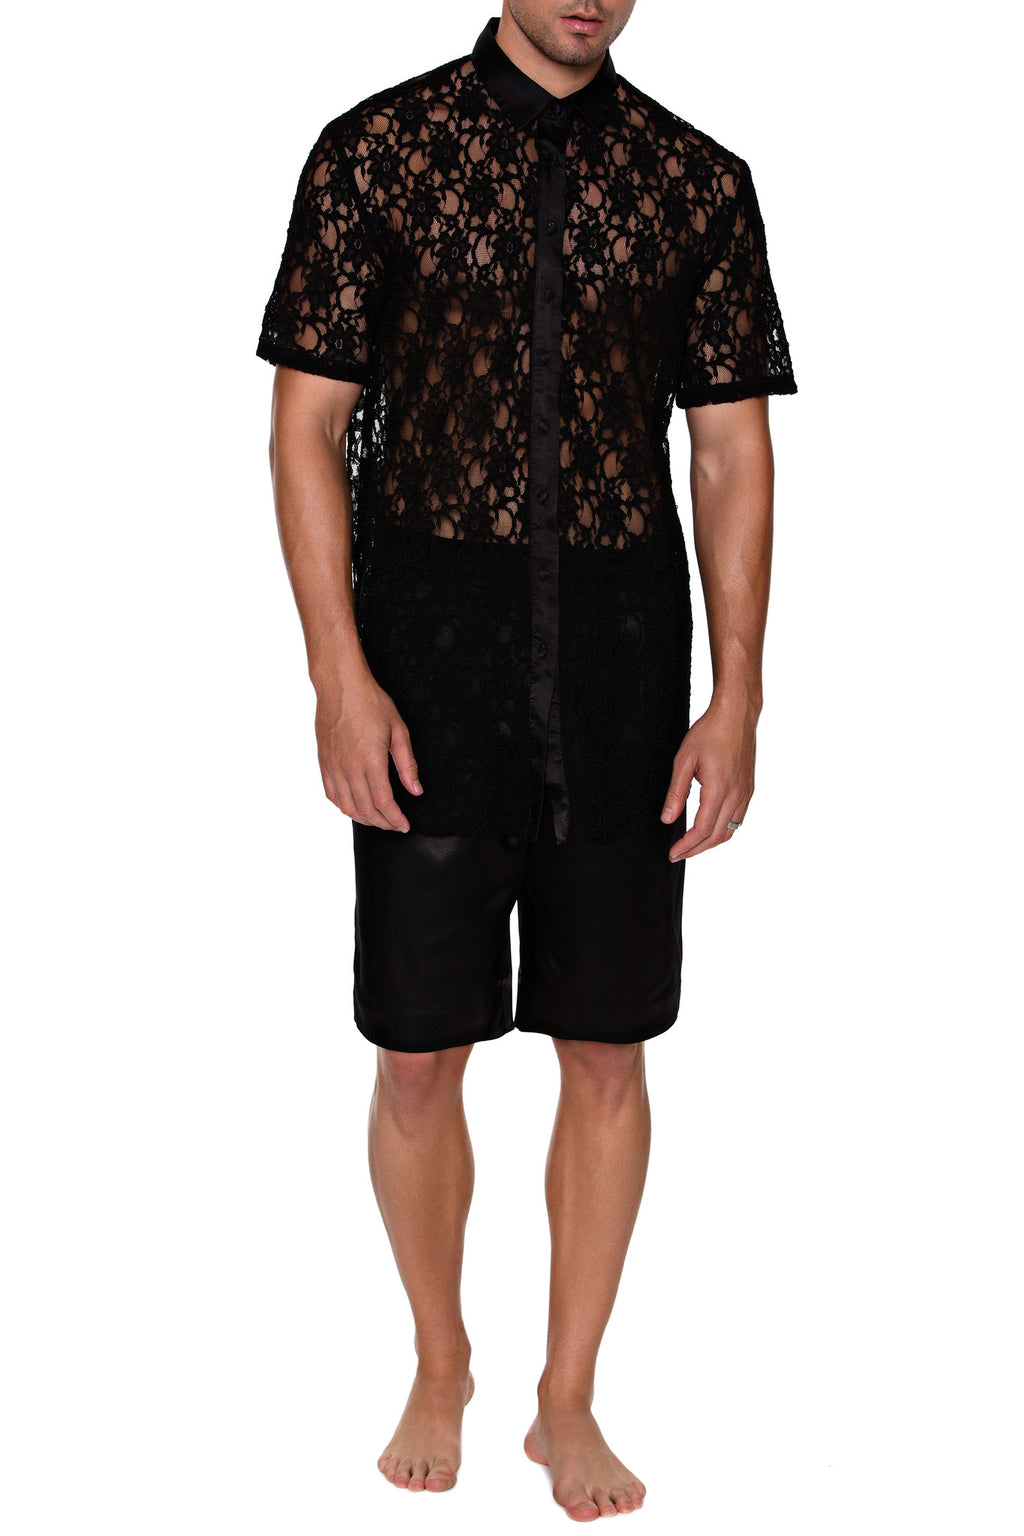 Button Up Shirt - Short Sleeve  (LACE) - MENAGERIÉ Intimates